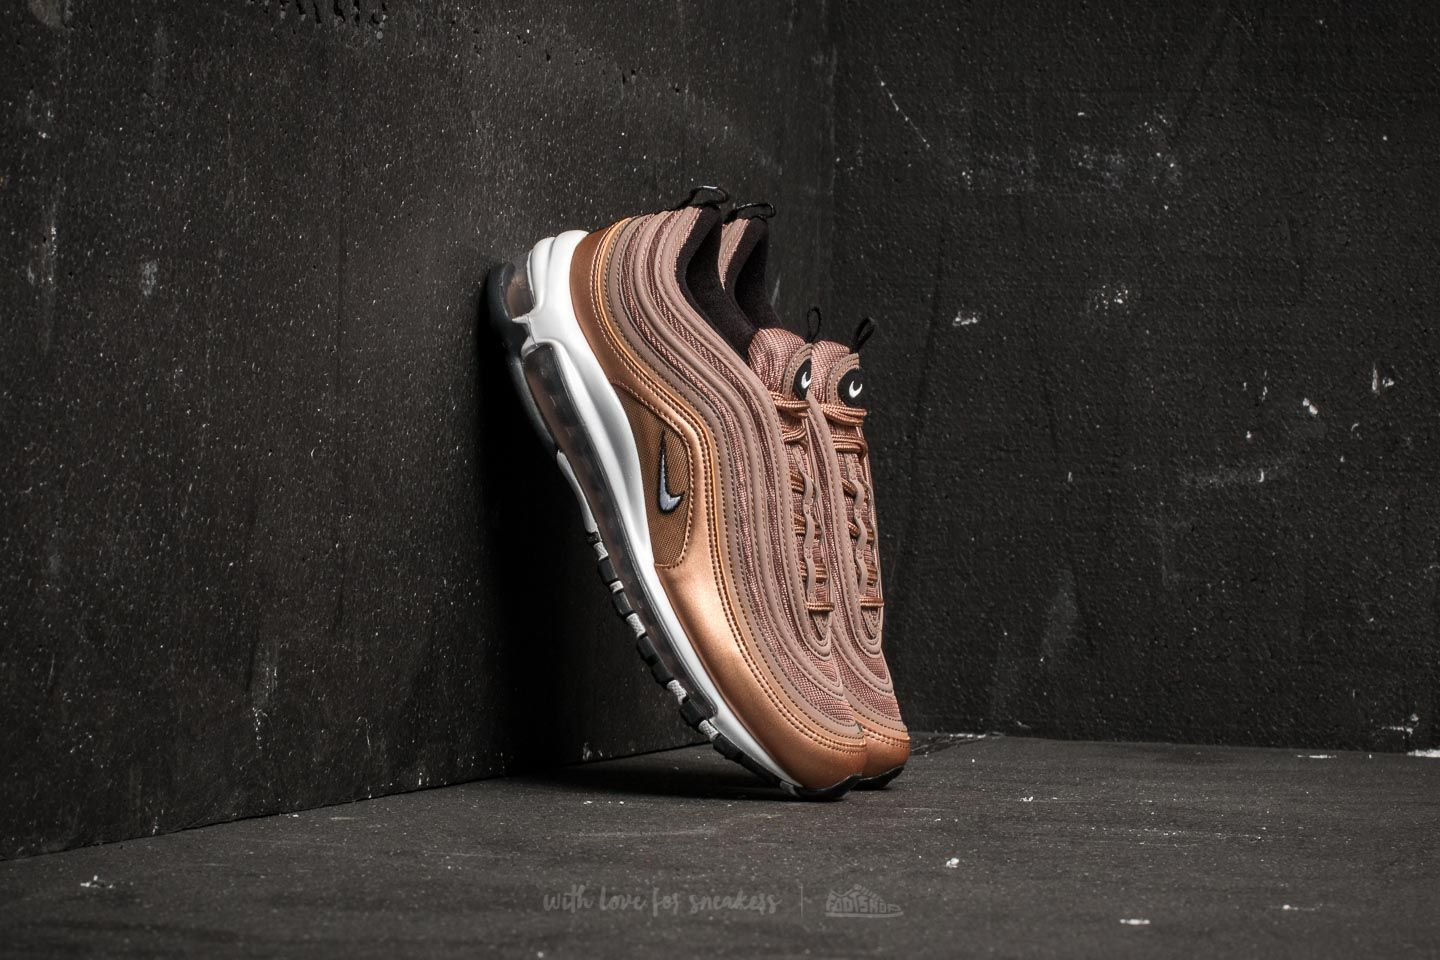 Nike Air Max 97 Desert Dust/ White